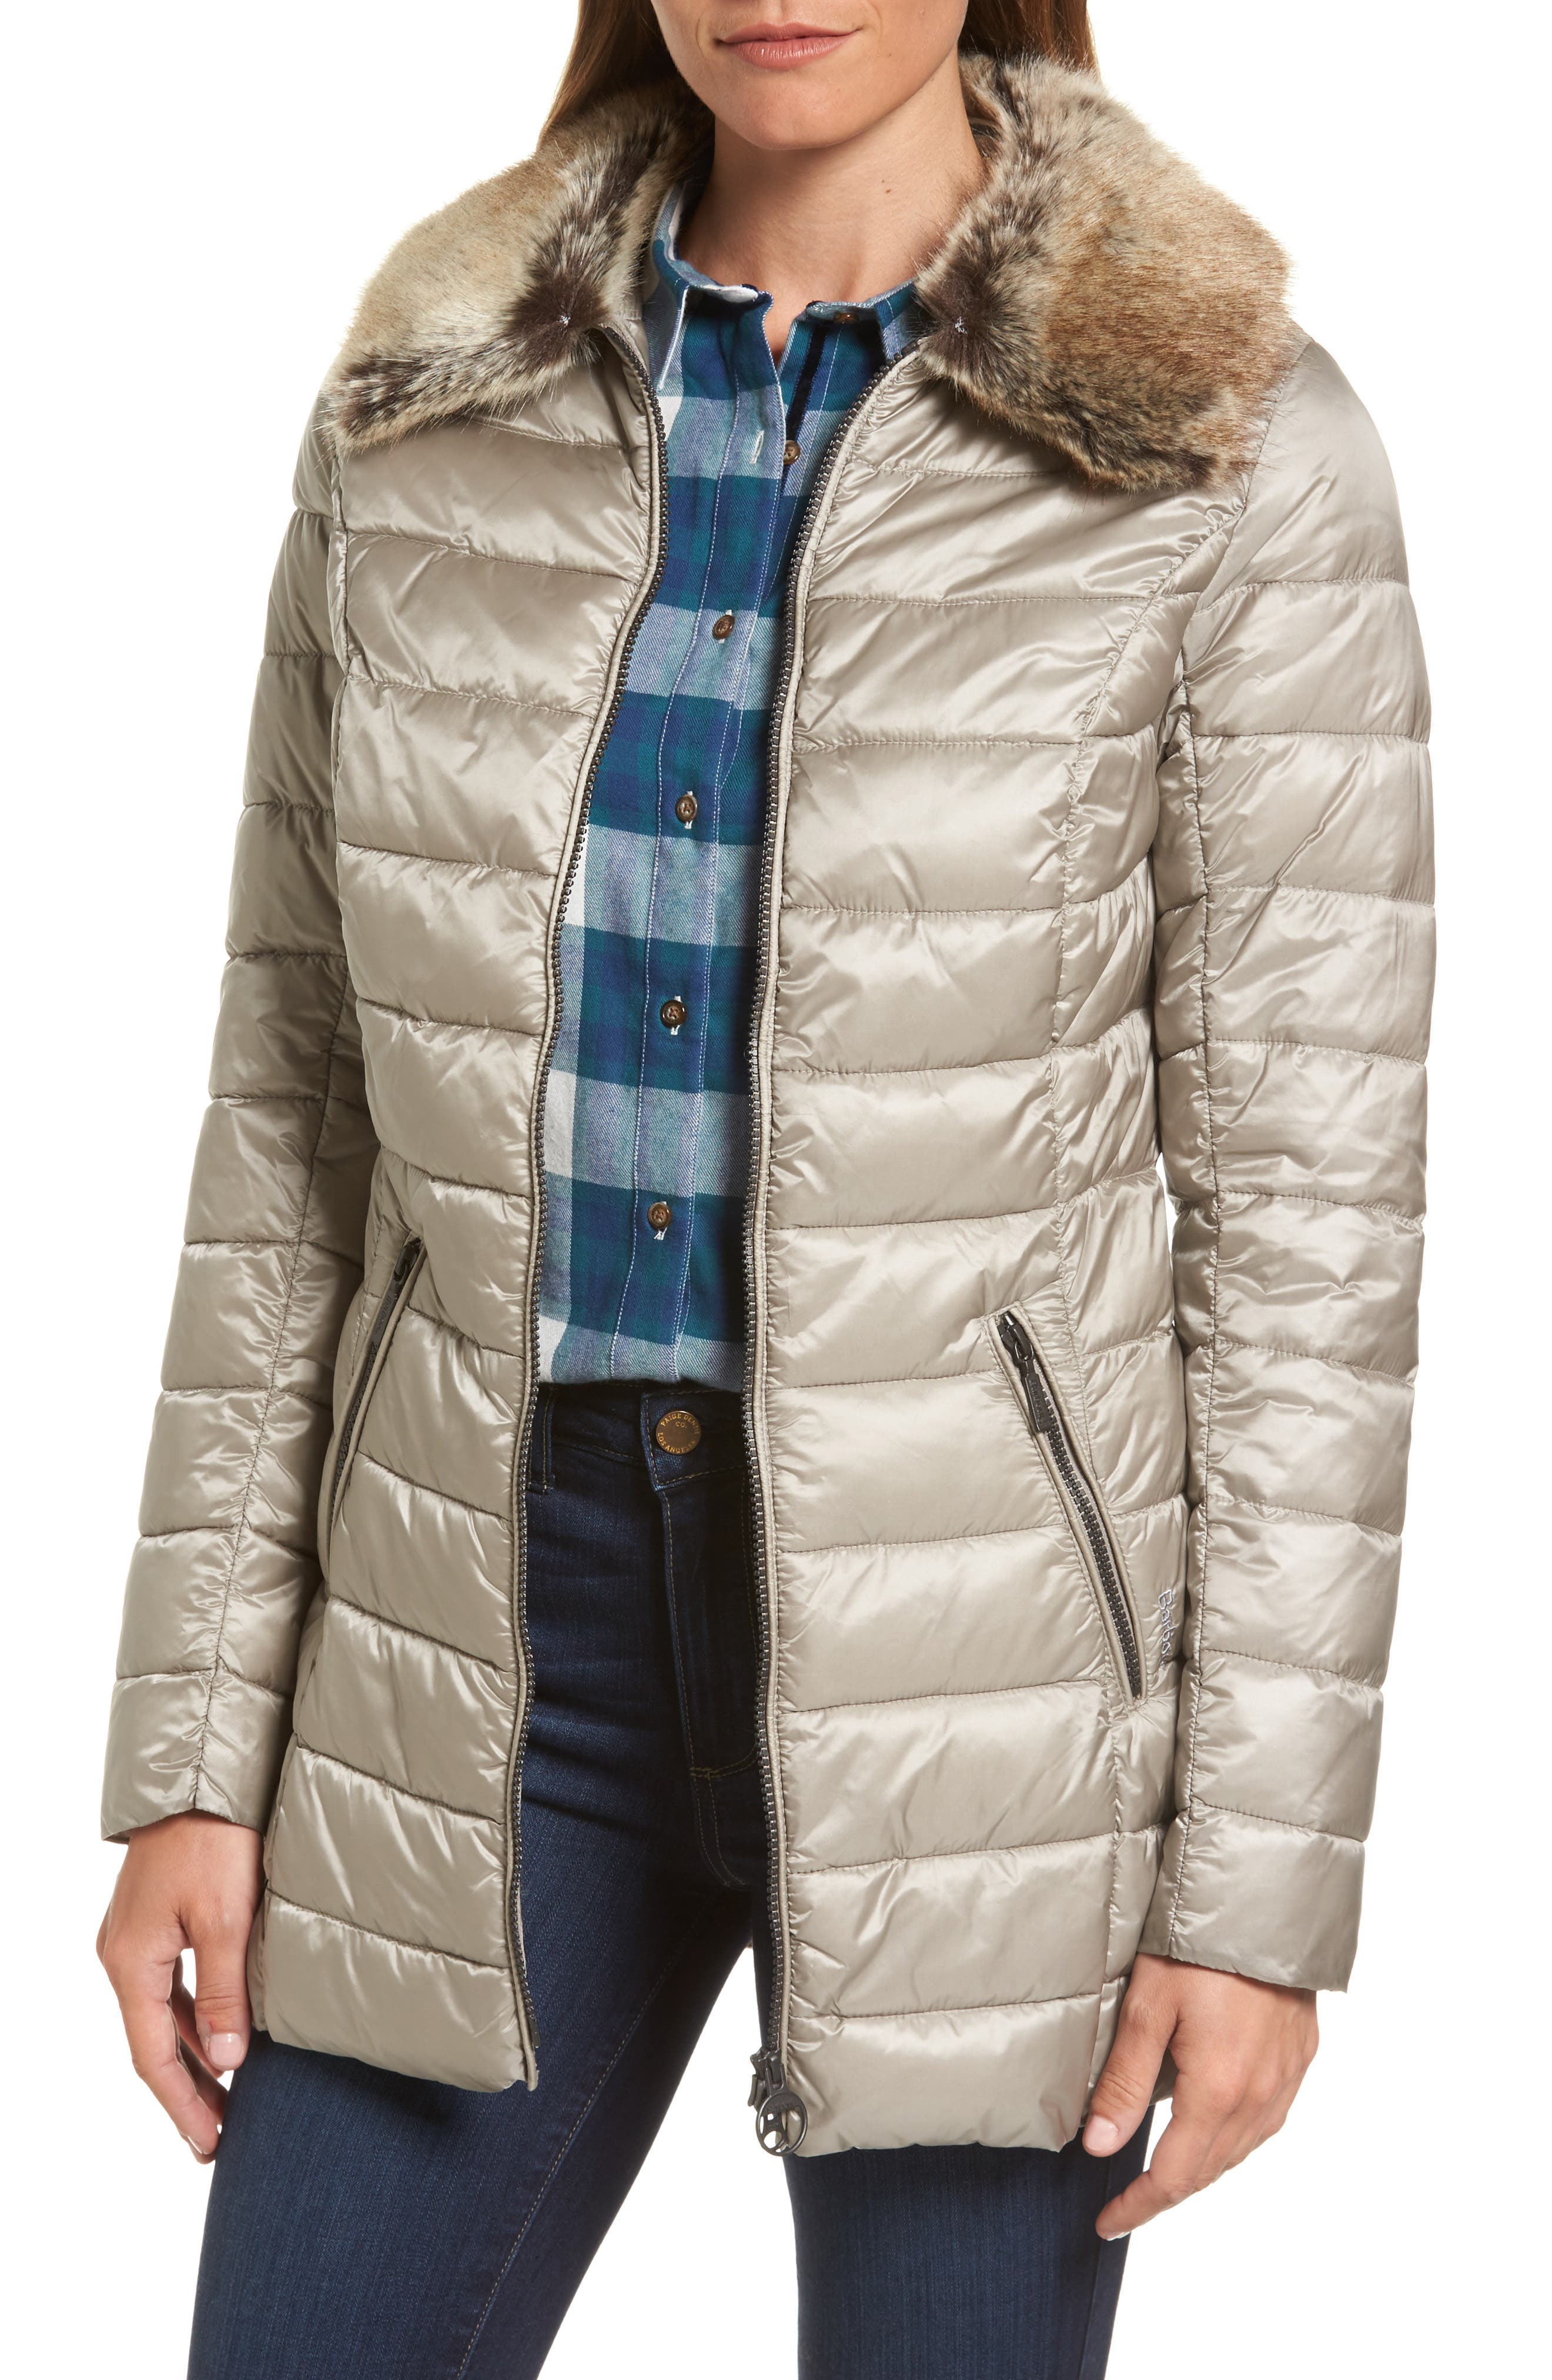 Rambleton Water Resistant Quilted Jacket with Faux Fur Collar,                             Main thumbnail 1, color,                             Taupe